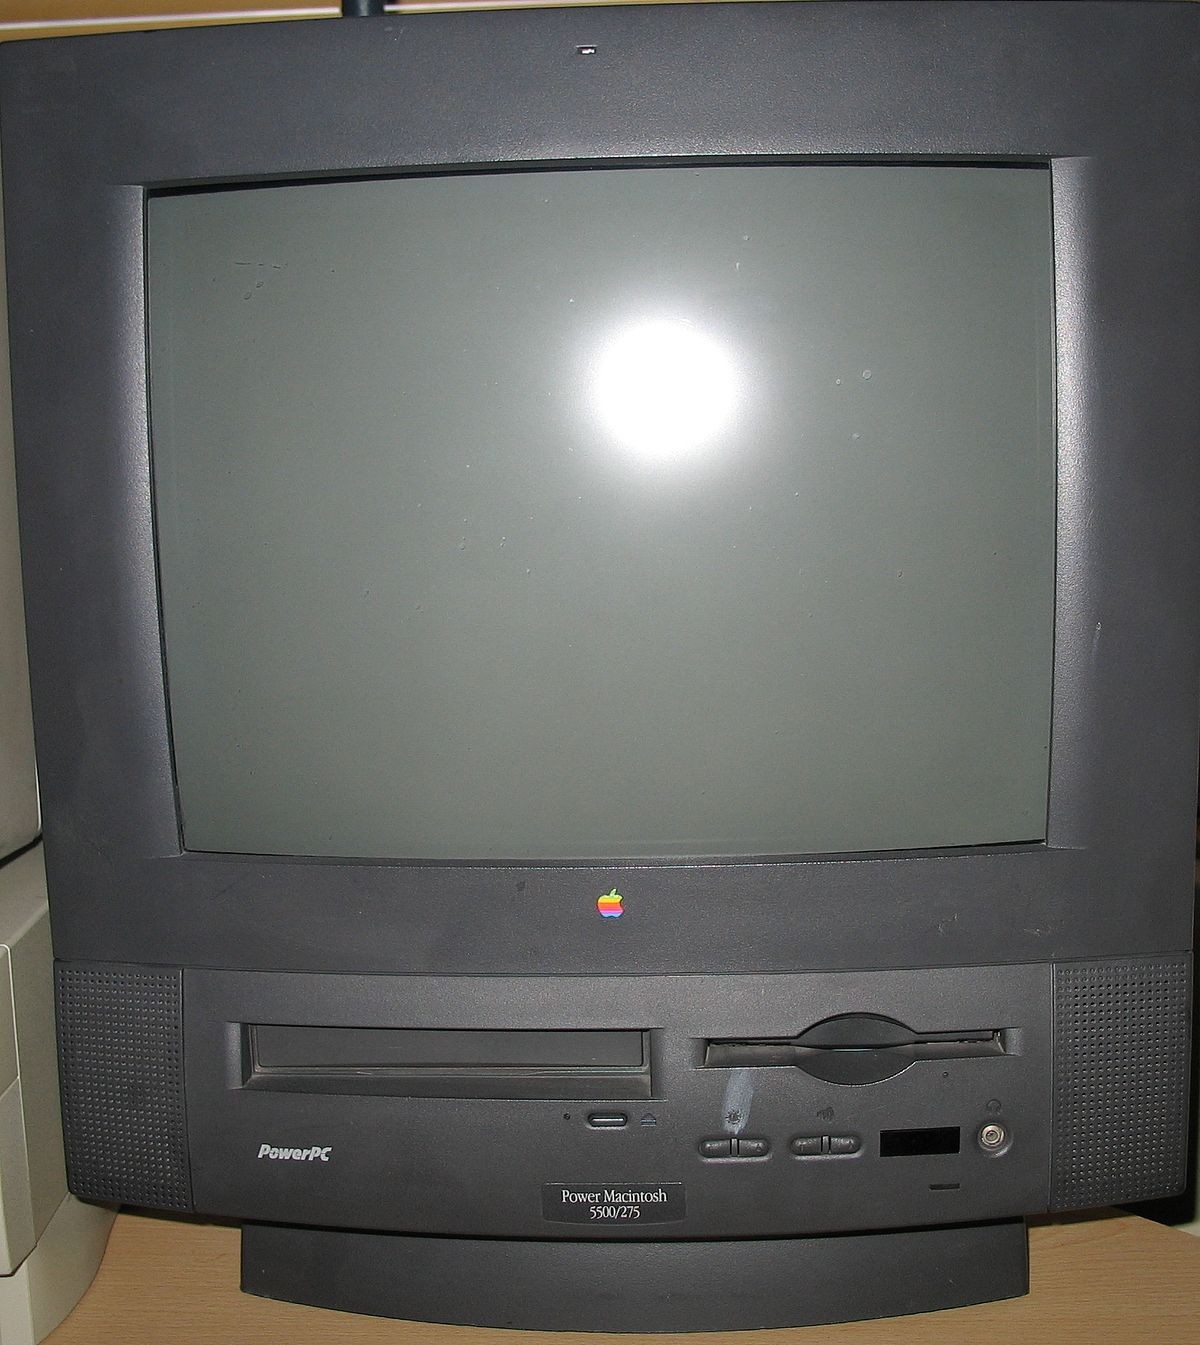 Power Macintosh 5500 - Wikipedia